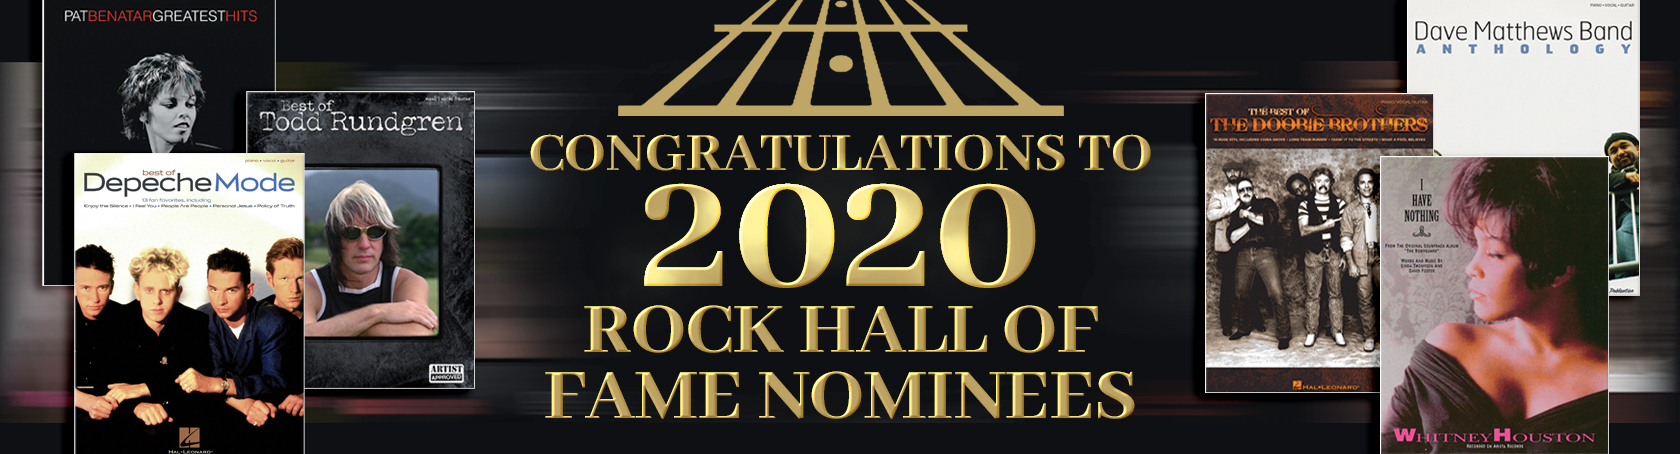 RnR HoF - Rock & Roll Hall of Fame Nominations